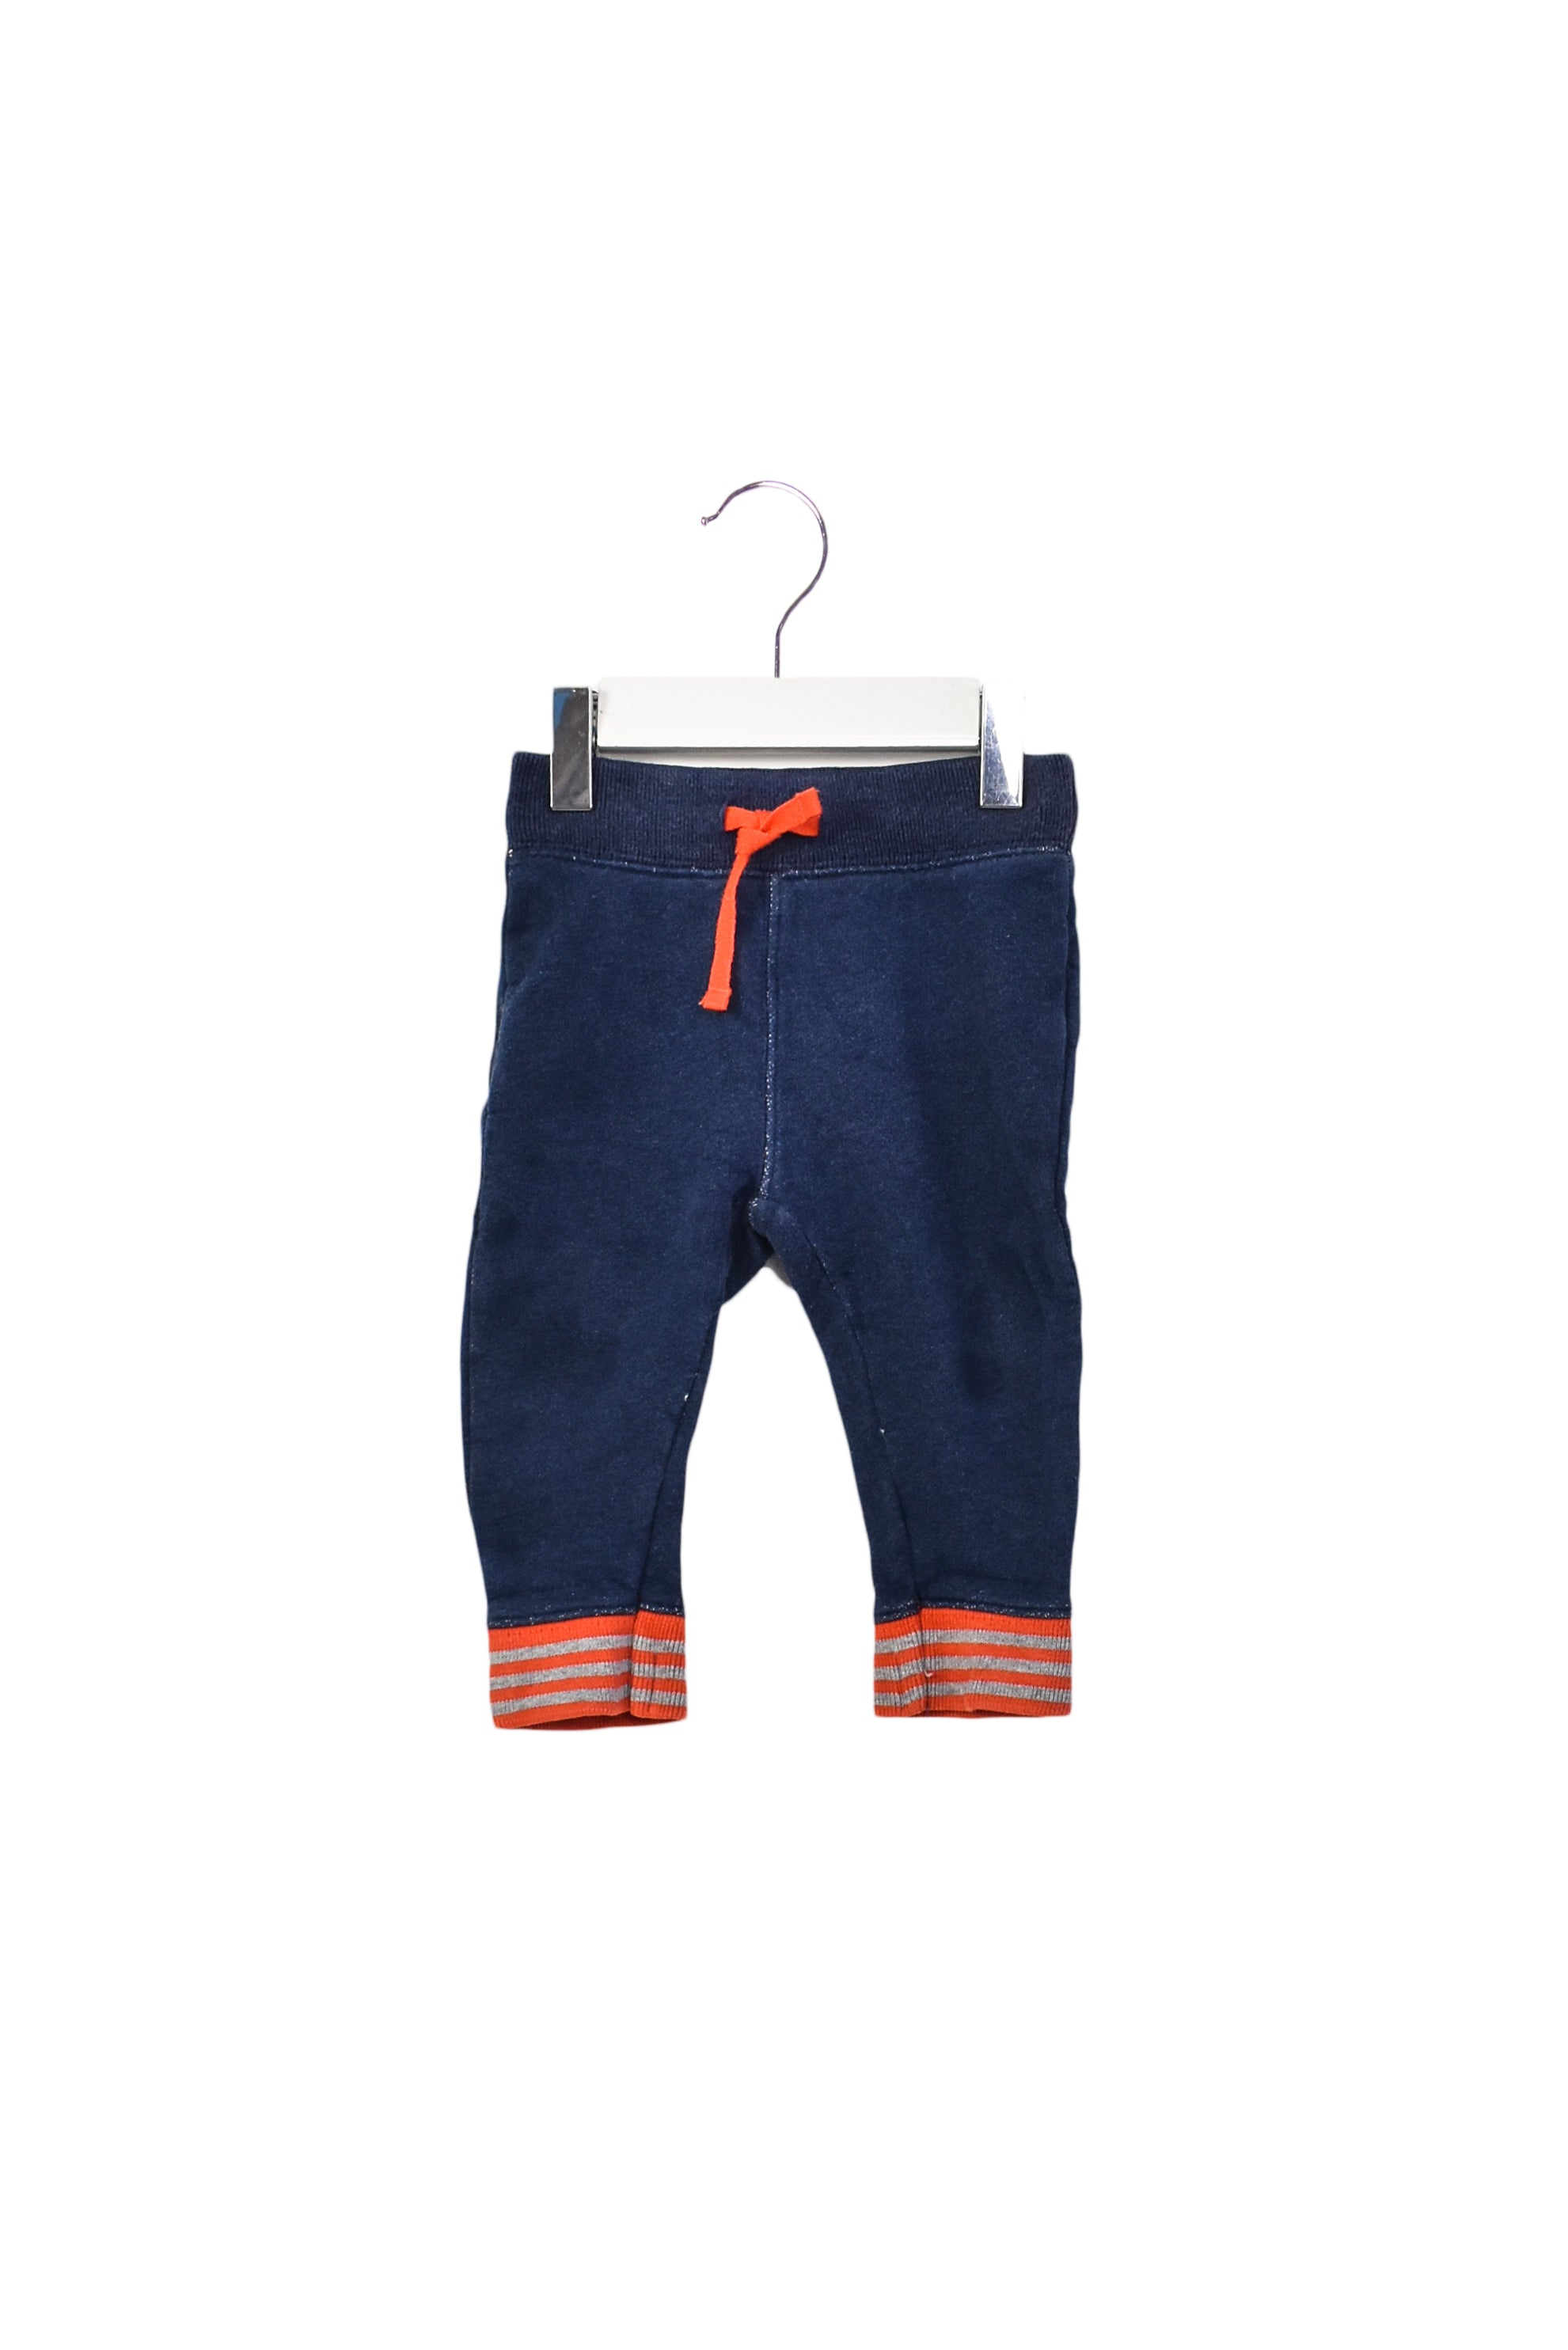 10013524 Boden Baby~Pants 6-12M at Retykle